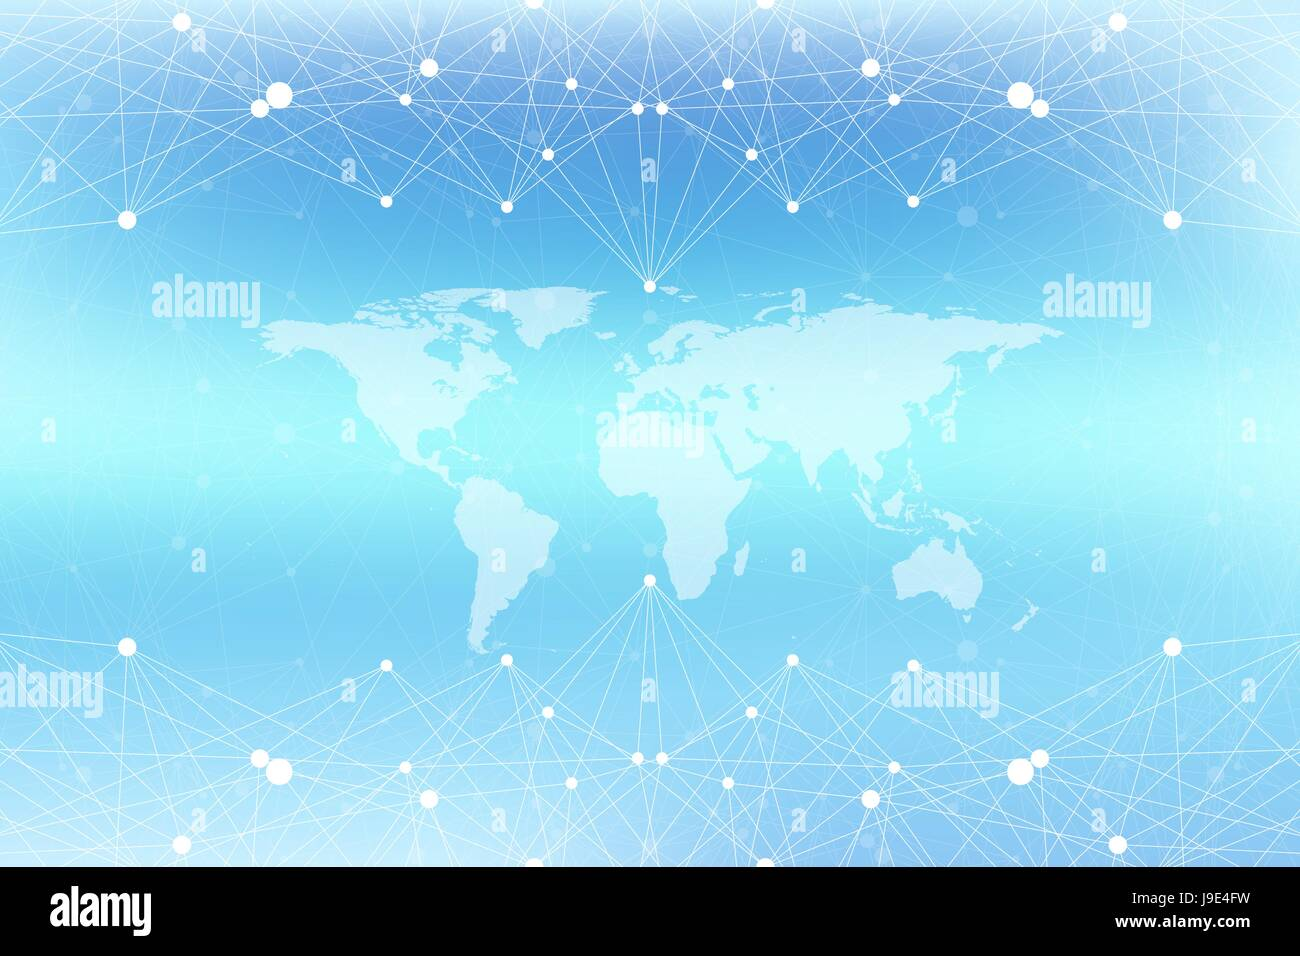 Graphic abstract background communication with world map big data graphic abstract background communication with world map big data visualization perspective backdrop with connected lines and dots social networking gumiabroncs Choice Image